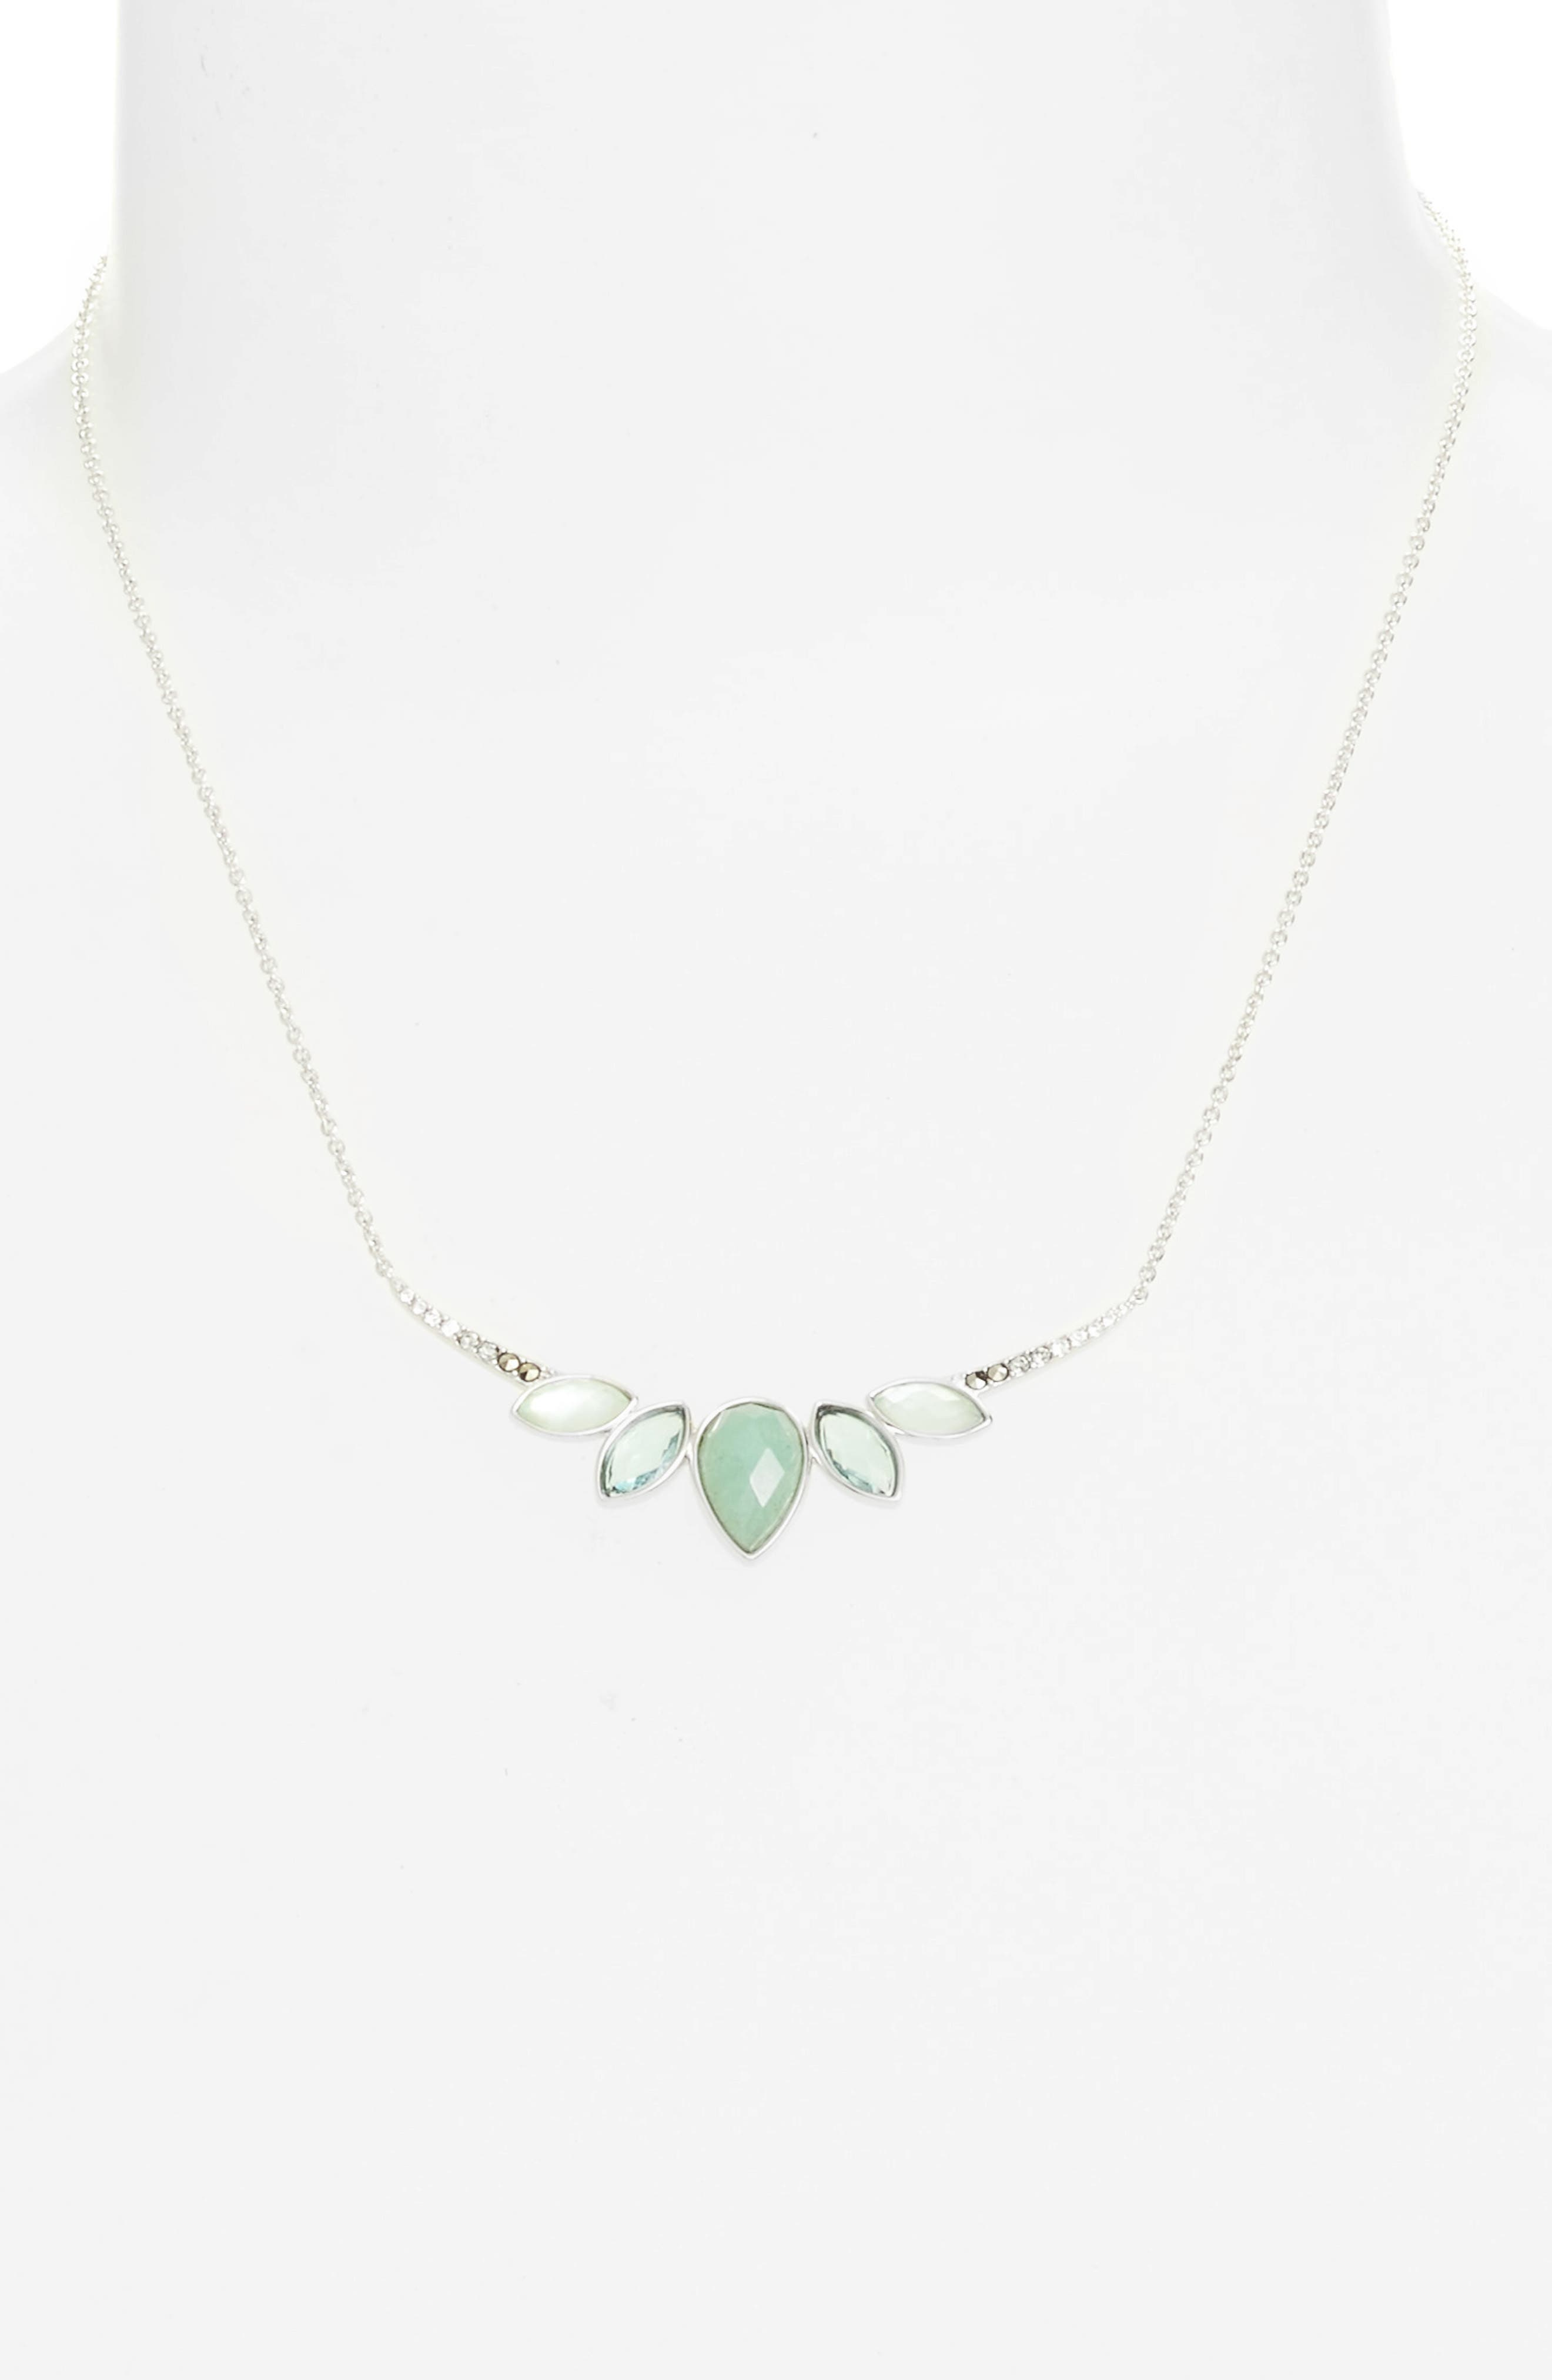 Lakeside Crystal Frontal Necklace,                             Alternate thumbnail 2, color,                             Green/ Black Diamond